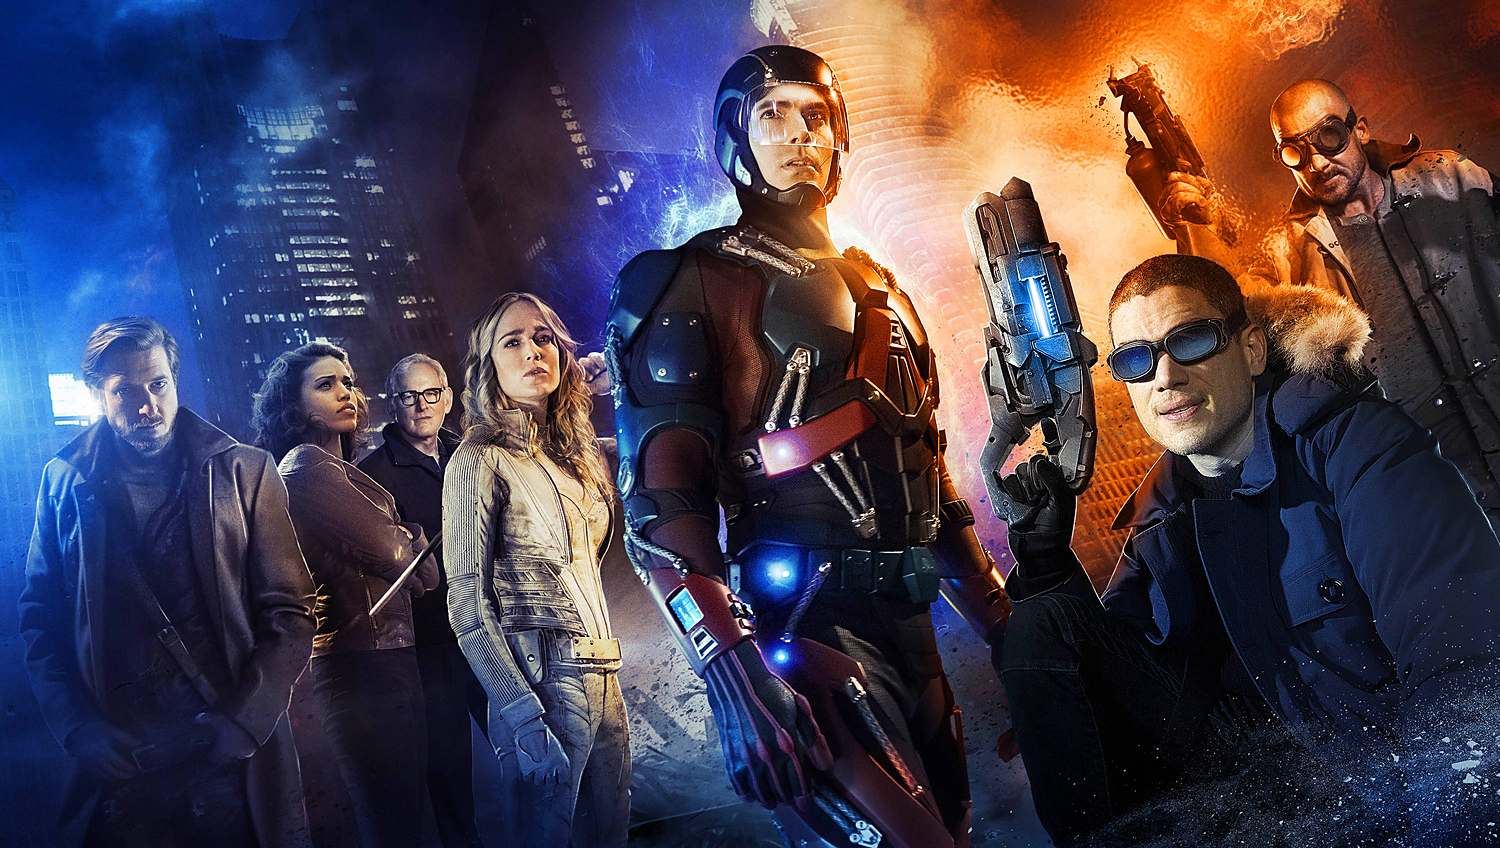 Legends of Tomorrow - Starring Victor Garber as Professor Martin Stein of Firestorm